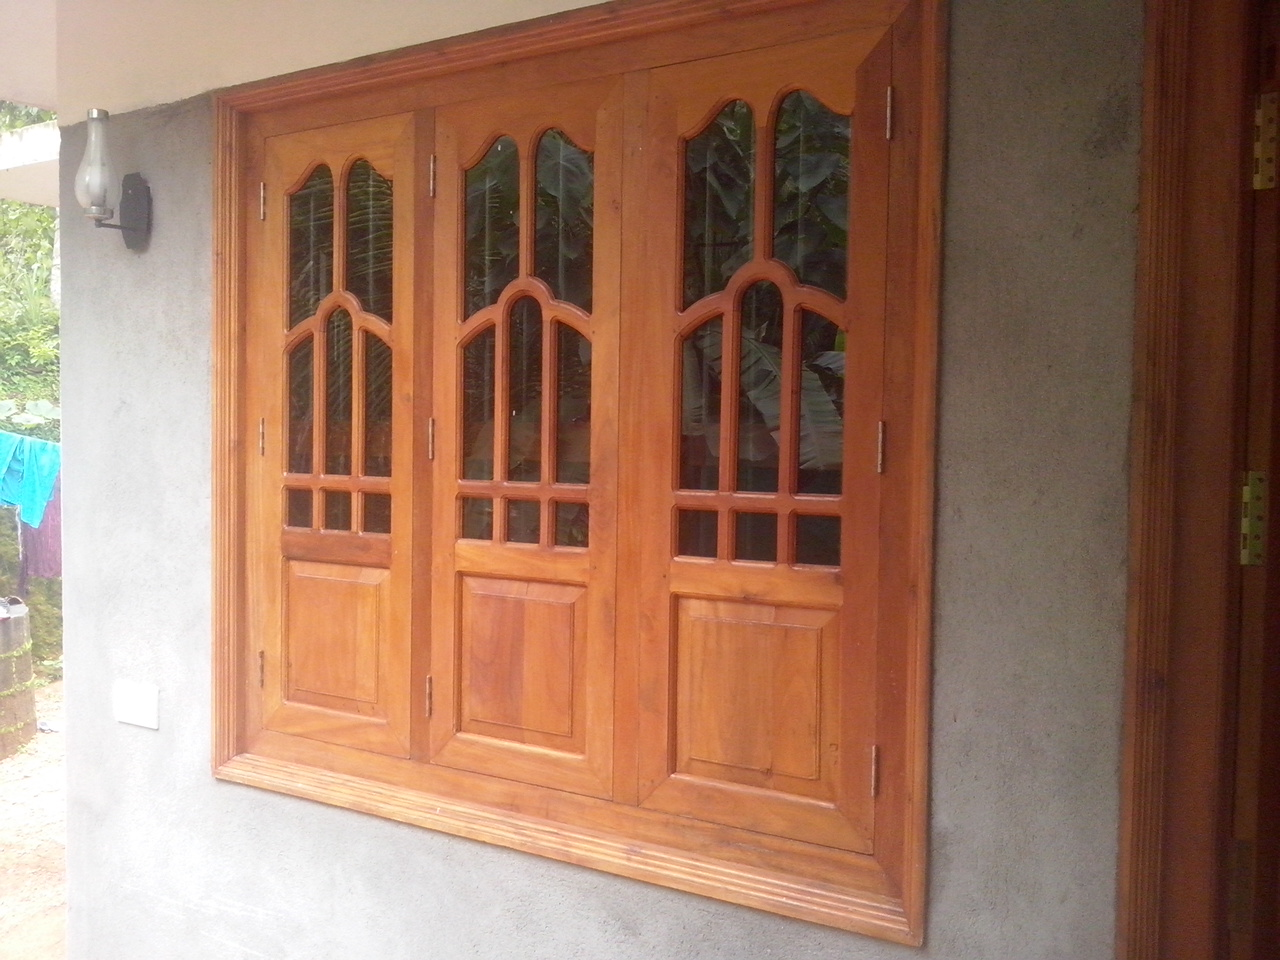 Bavas wood works kerala style wooden window door designs for Wood window door design